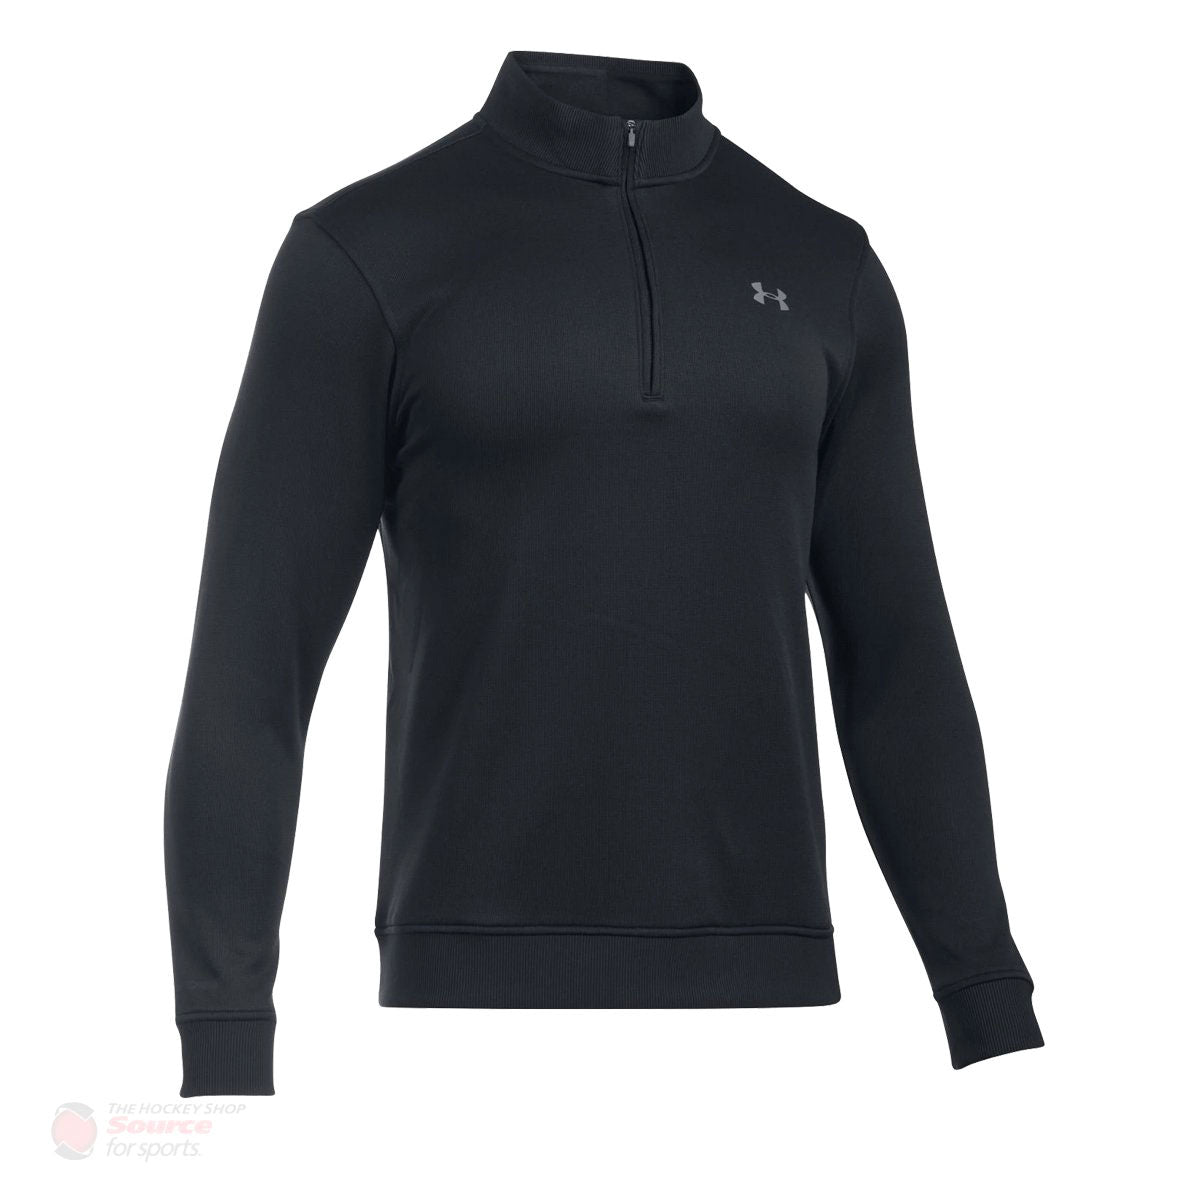 Under Armour Storm SweaterFleece 1/4 Zip Men's Jacket